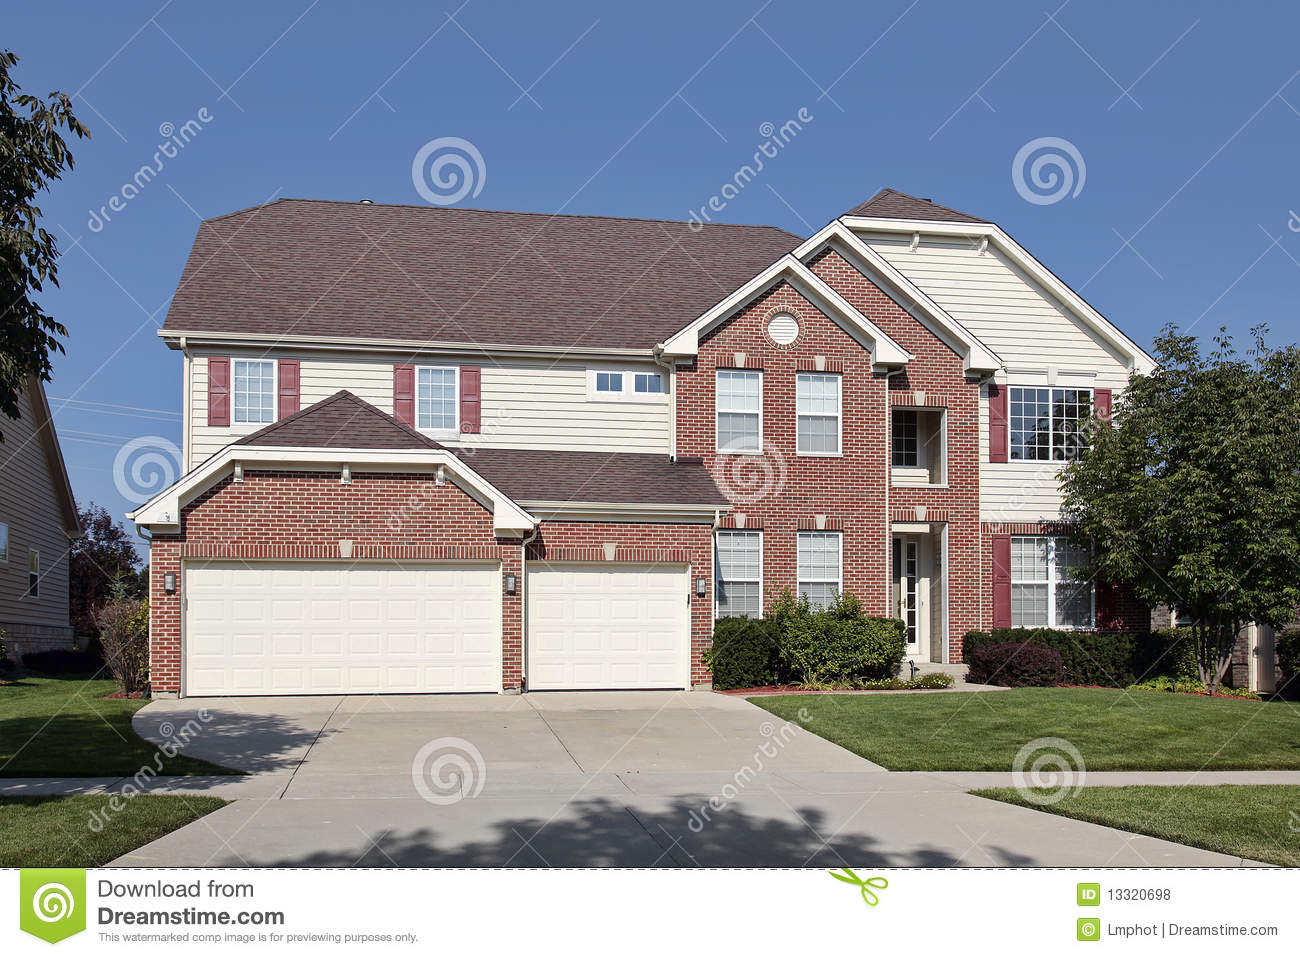 Brick home with three car garage royalty free stock photos for 3 car garage homes